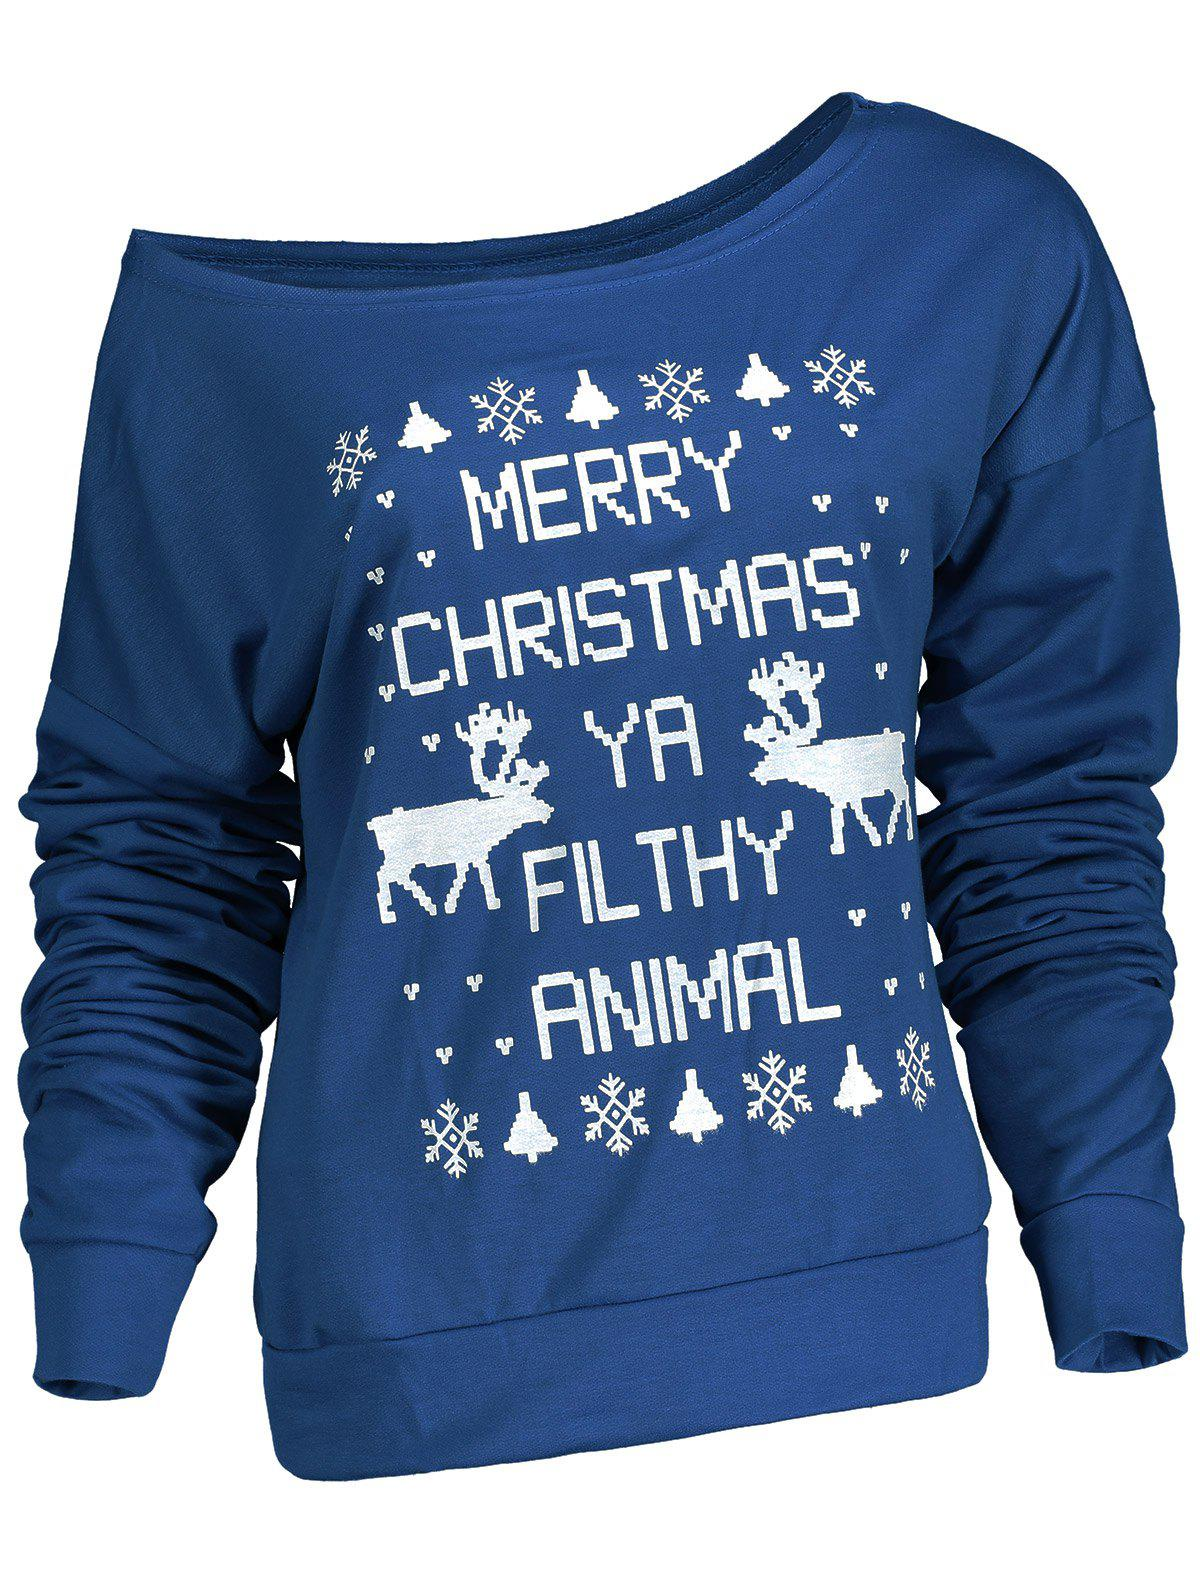 Stylish Letter and Snowflake Print Pullover Christmas Sweatshirt For Women - BLUE XL